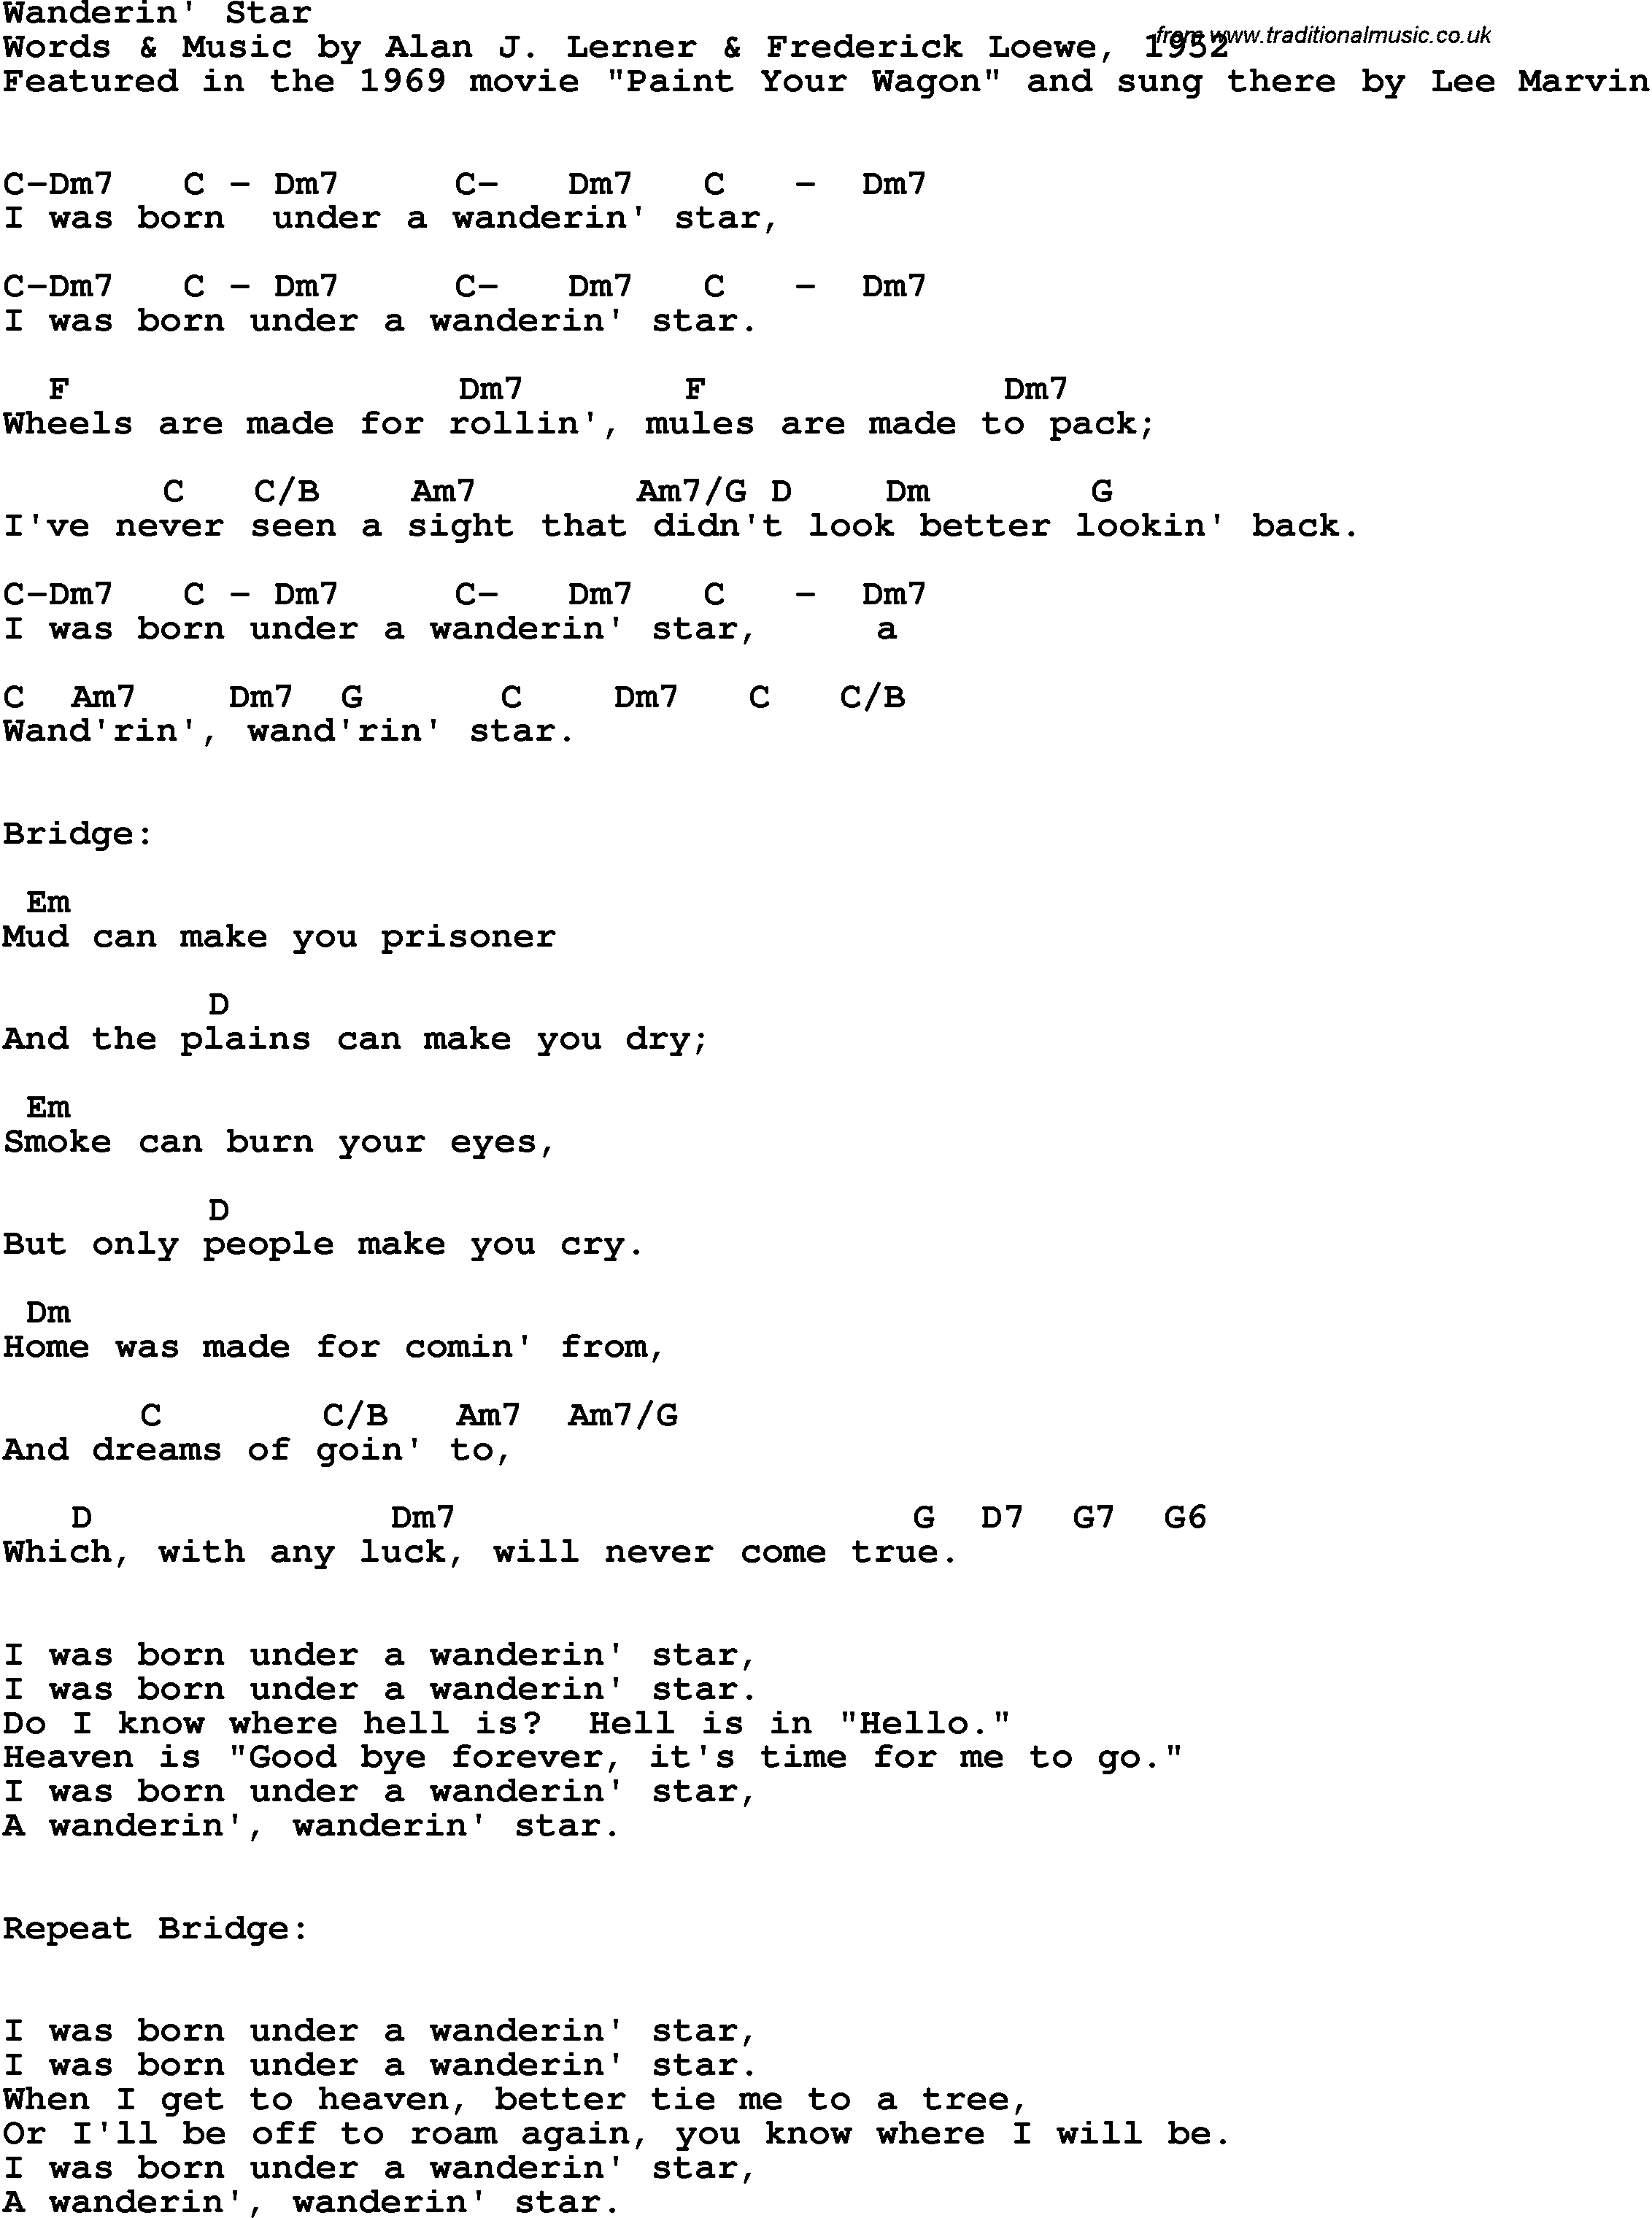 Under The Bridge Chords Song Lyrics With Guitar Chords For Wanderin Star Lee Marvin 1969